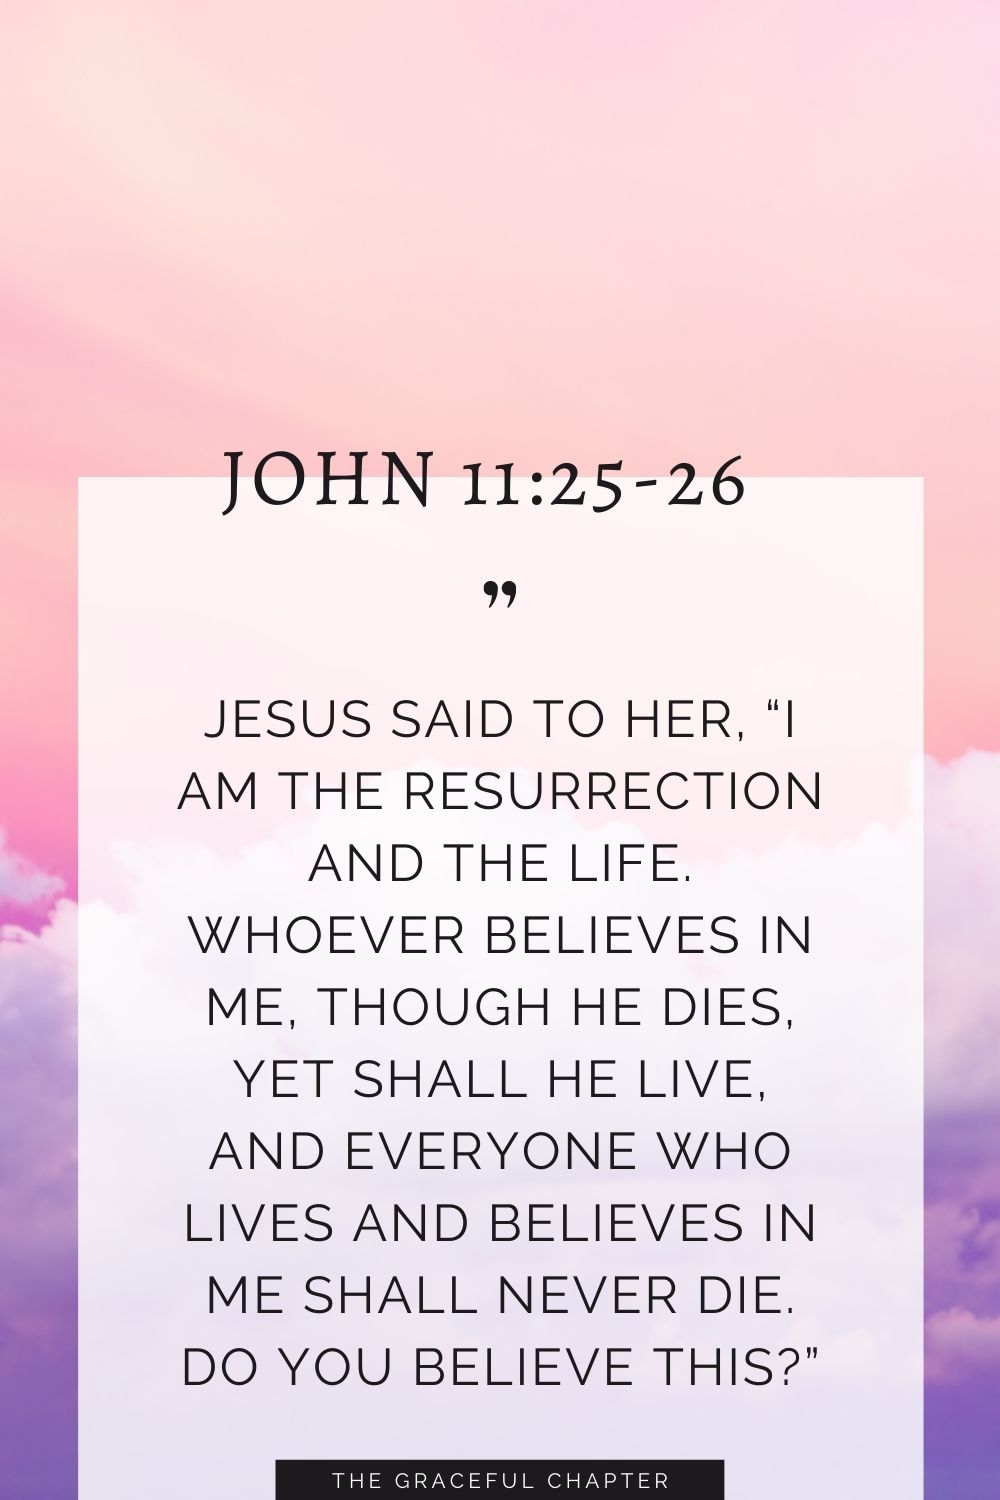 """Jesus said to her, """"I am the resurrection and the life. Whoever believes in me, though he dies, yet shall he live, and everyone who lives and believes in me shall never die. Do you believe this?"""" John 11:25-26"""